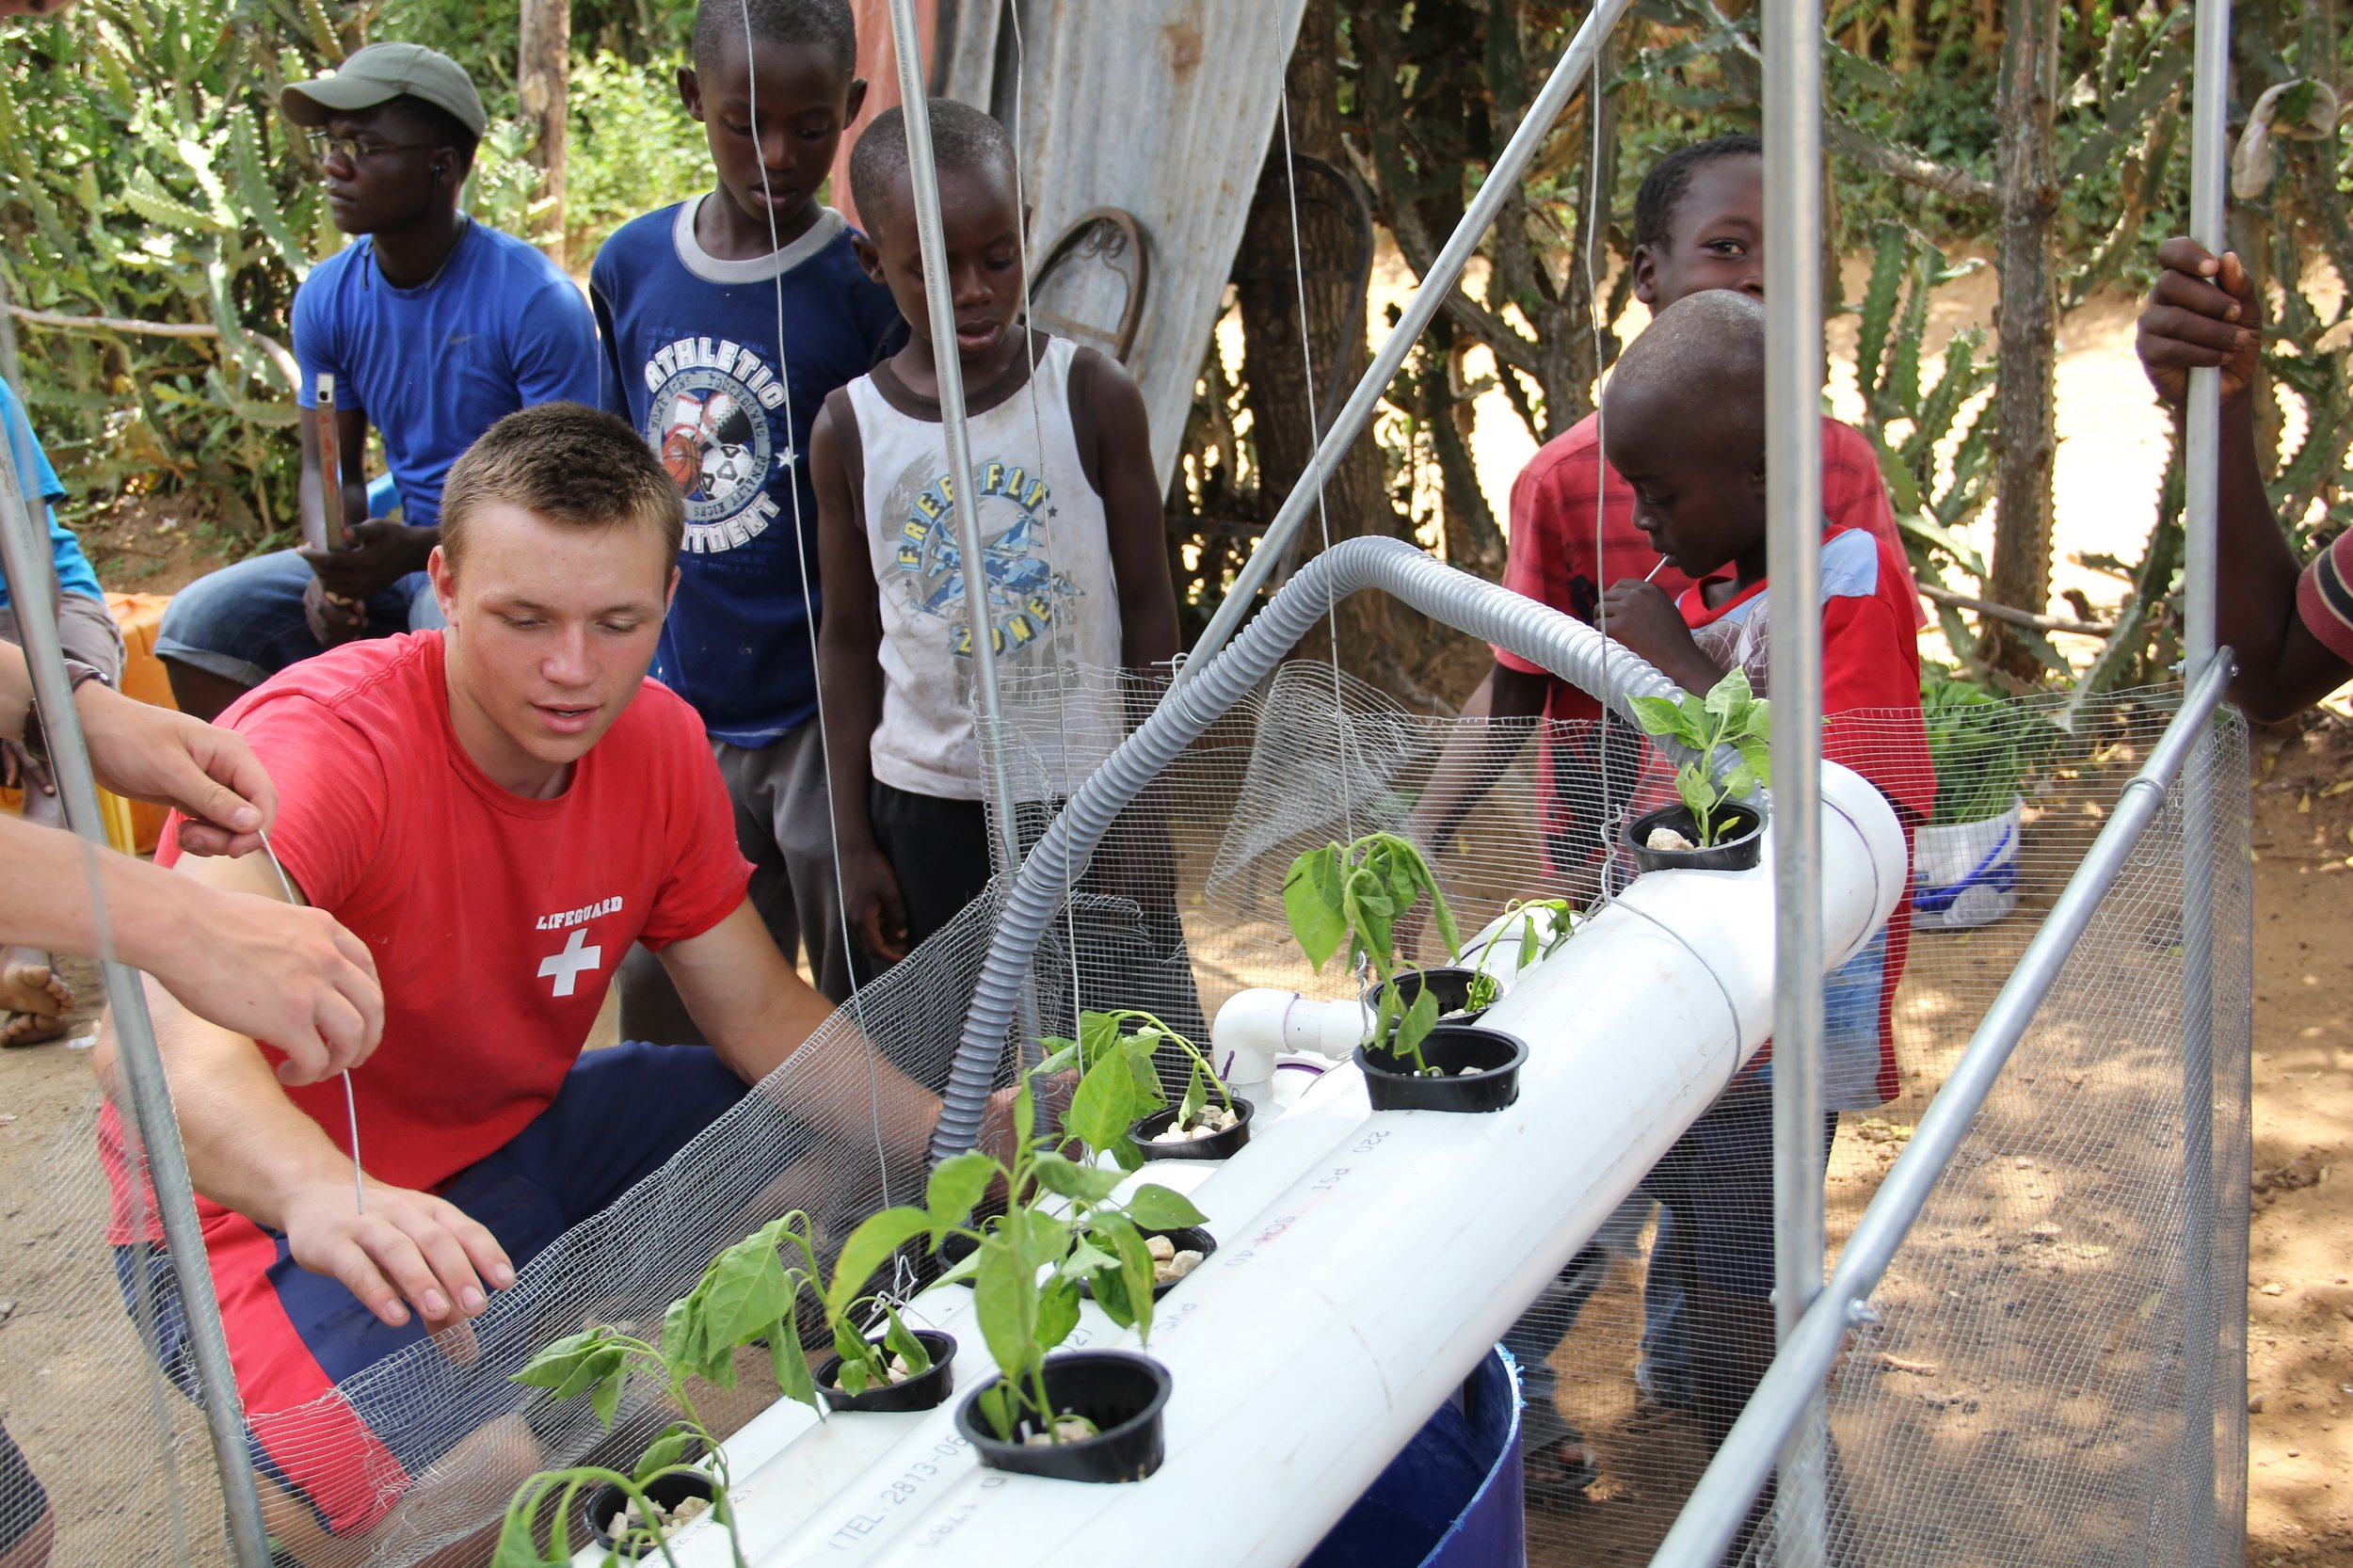 Christian Heiden '20 (ENG), center, started a non-profit organization Levo International to bring hydroponics to those in need in Haiti.